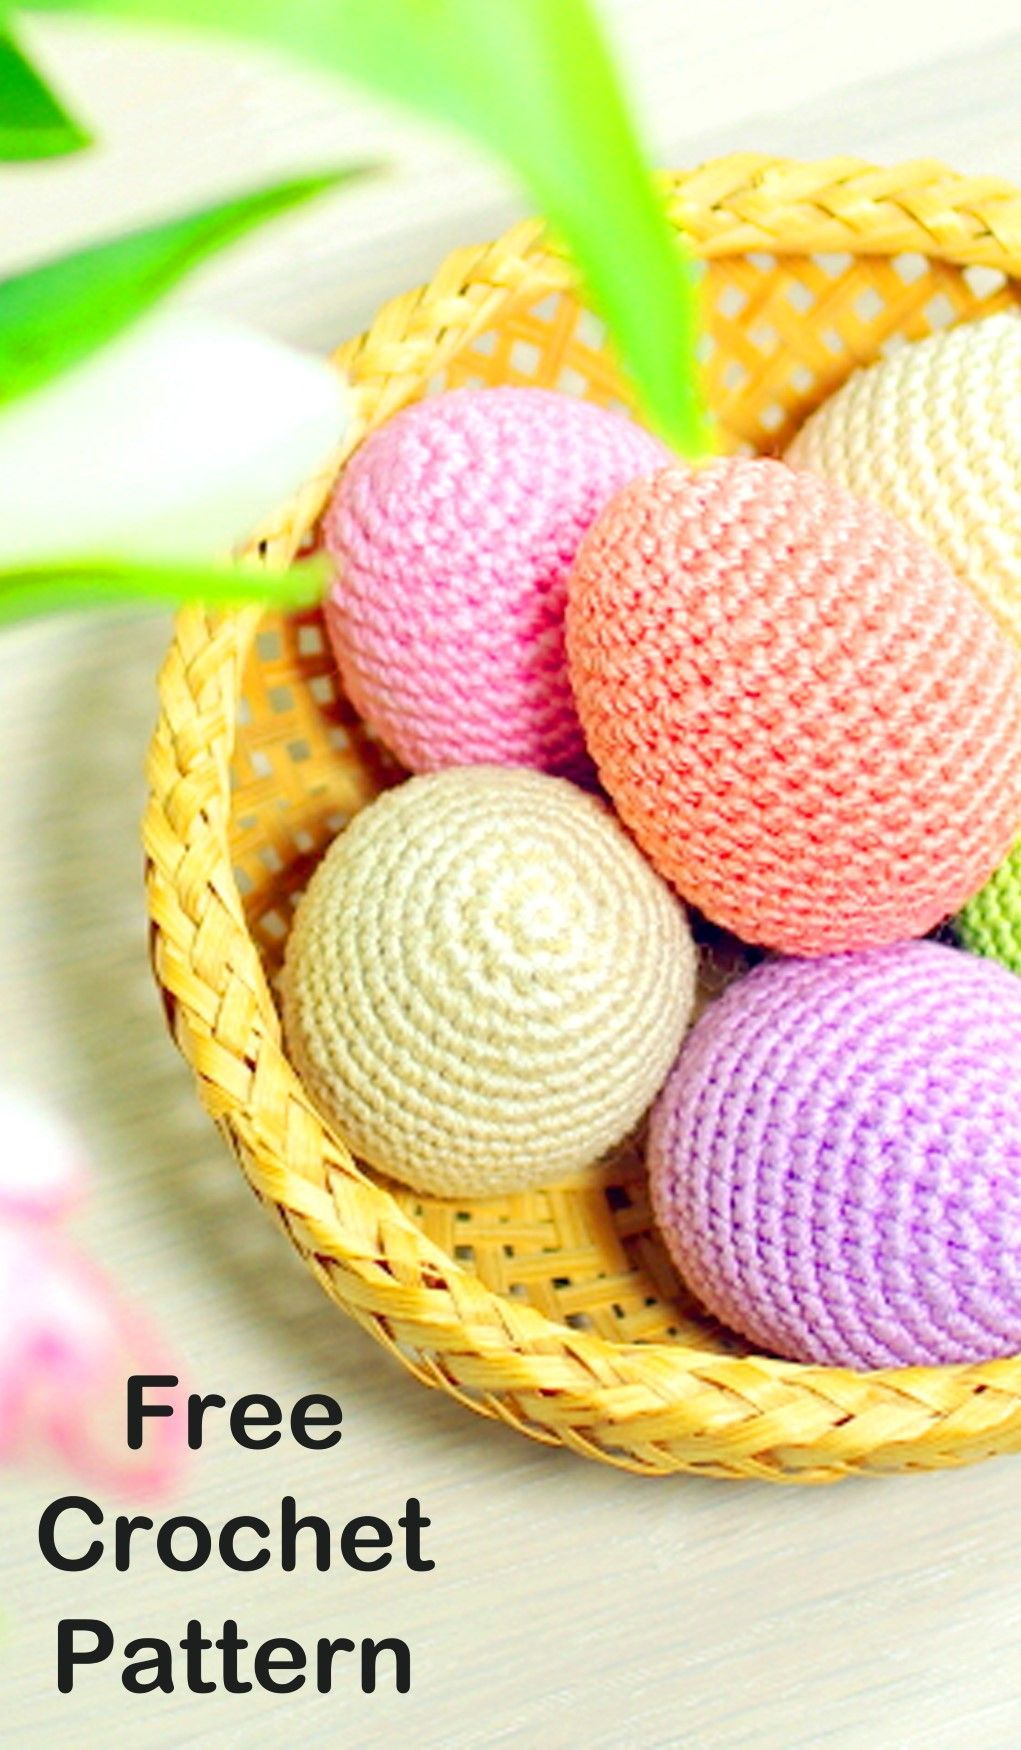 Easter Eggs: Free Crochet Patterns! - AmVaBe Crochet #eastercrochetpatterns